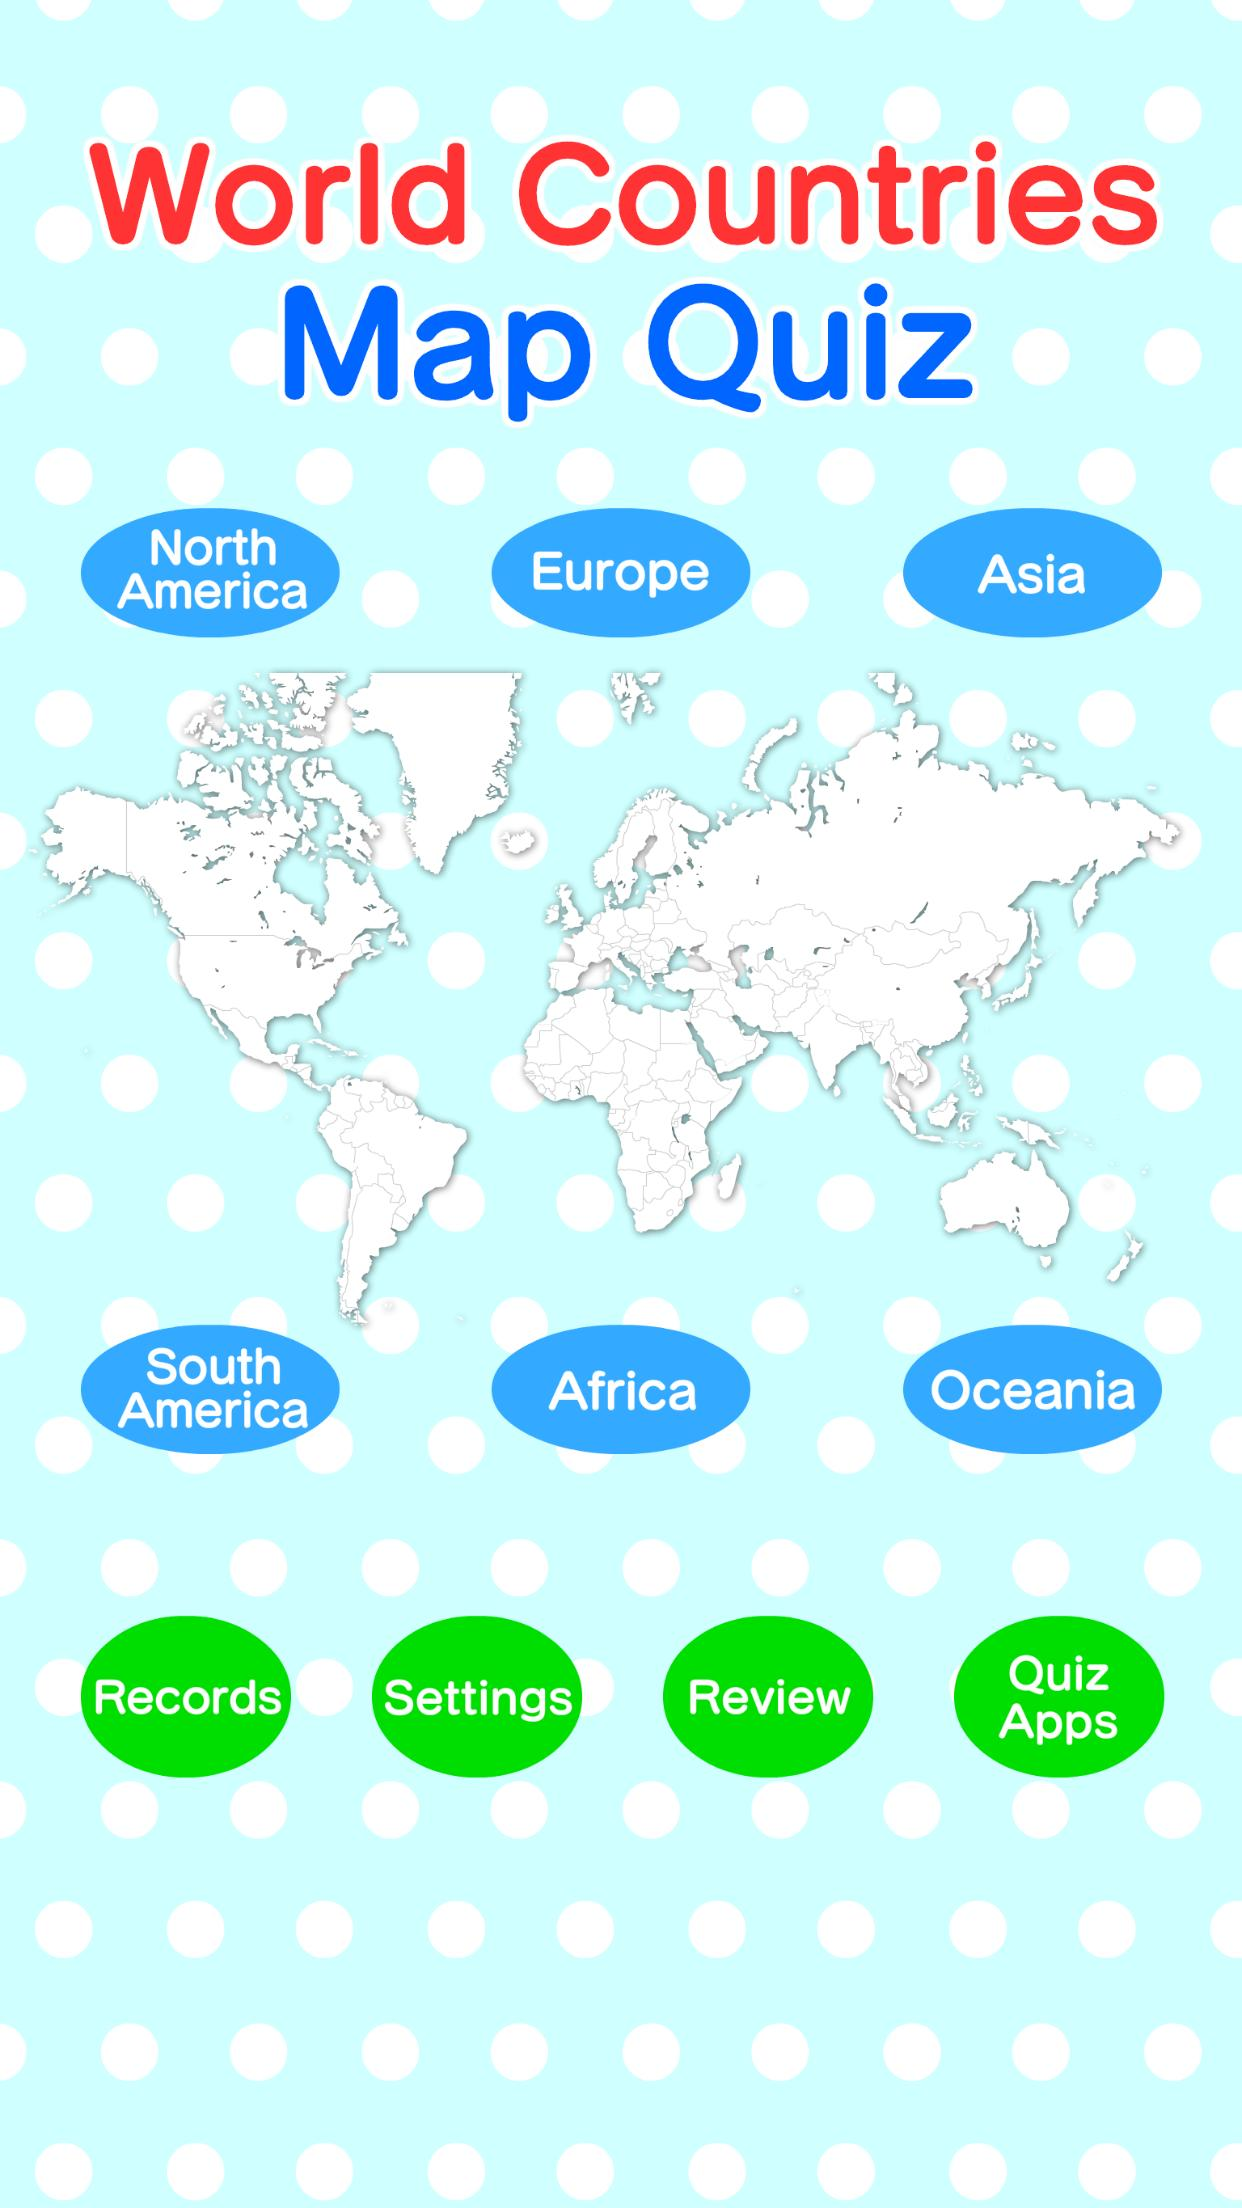 World Countries Map Quiz - Geography Game for Android - APK ...